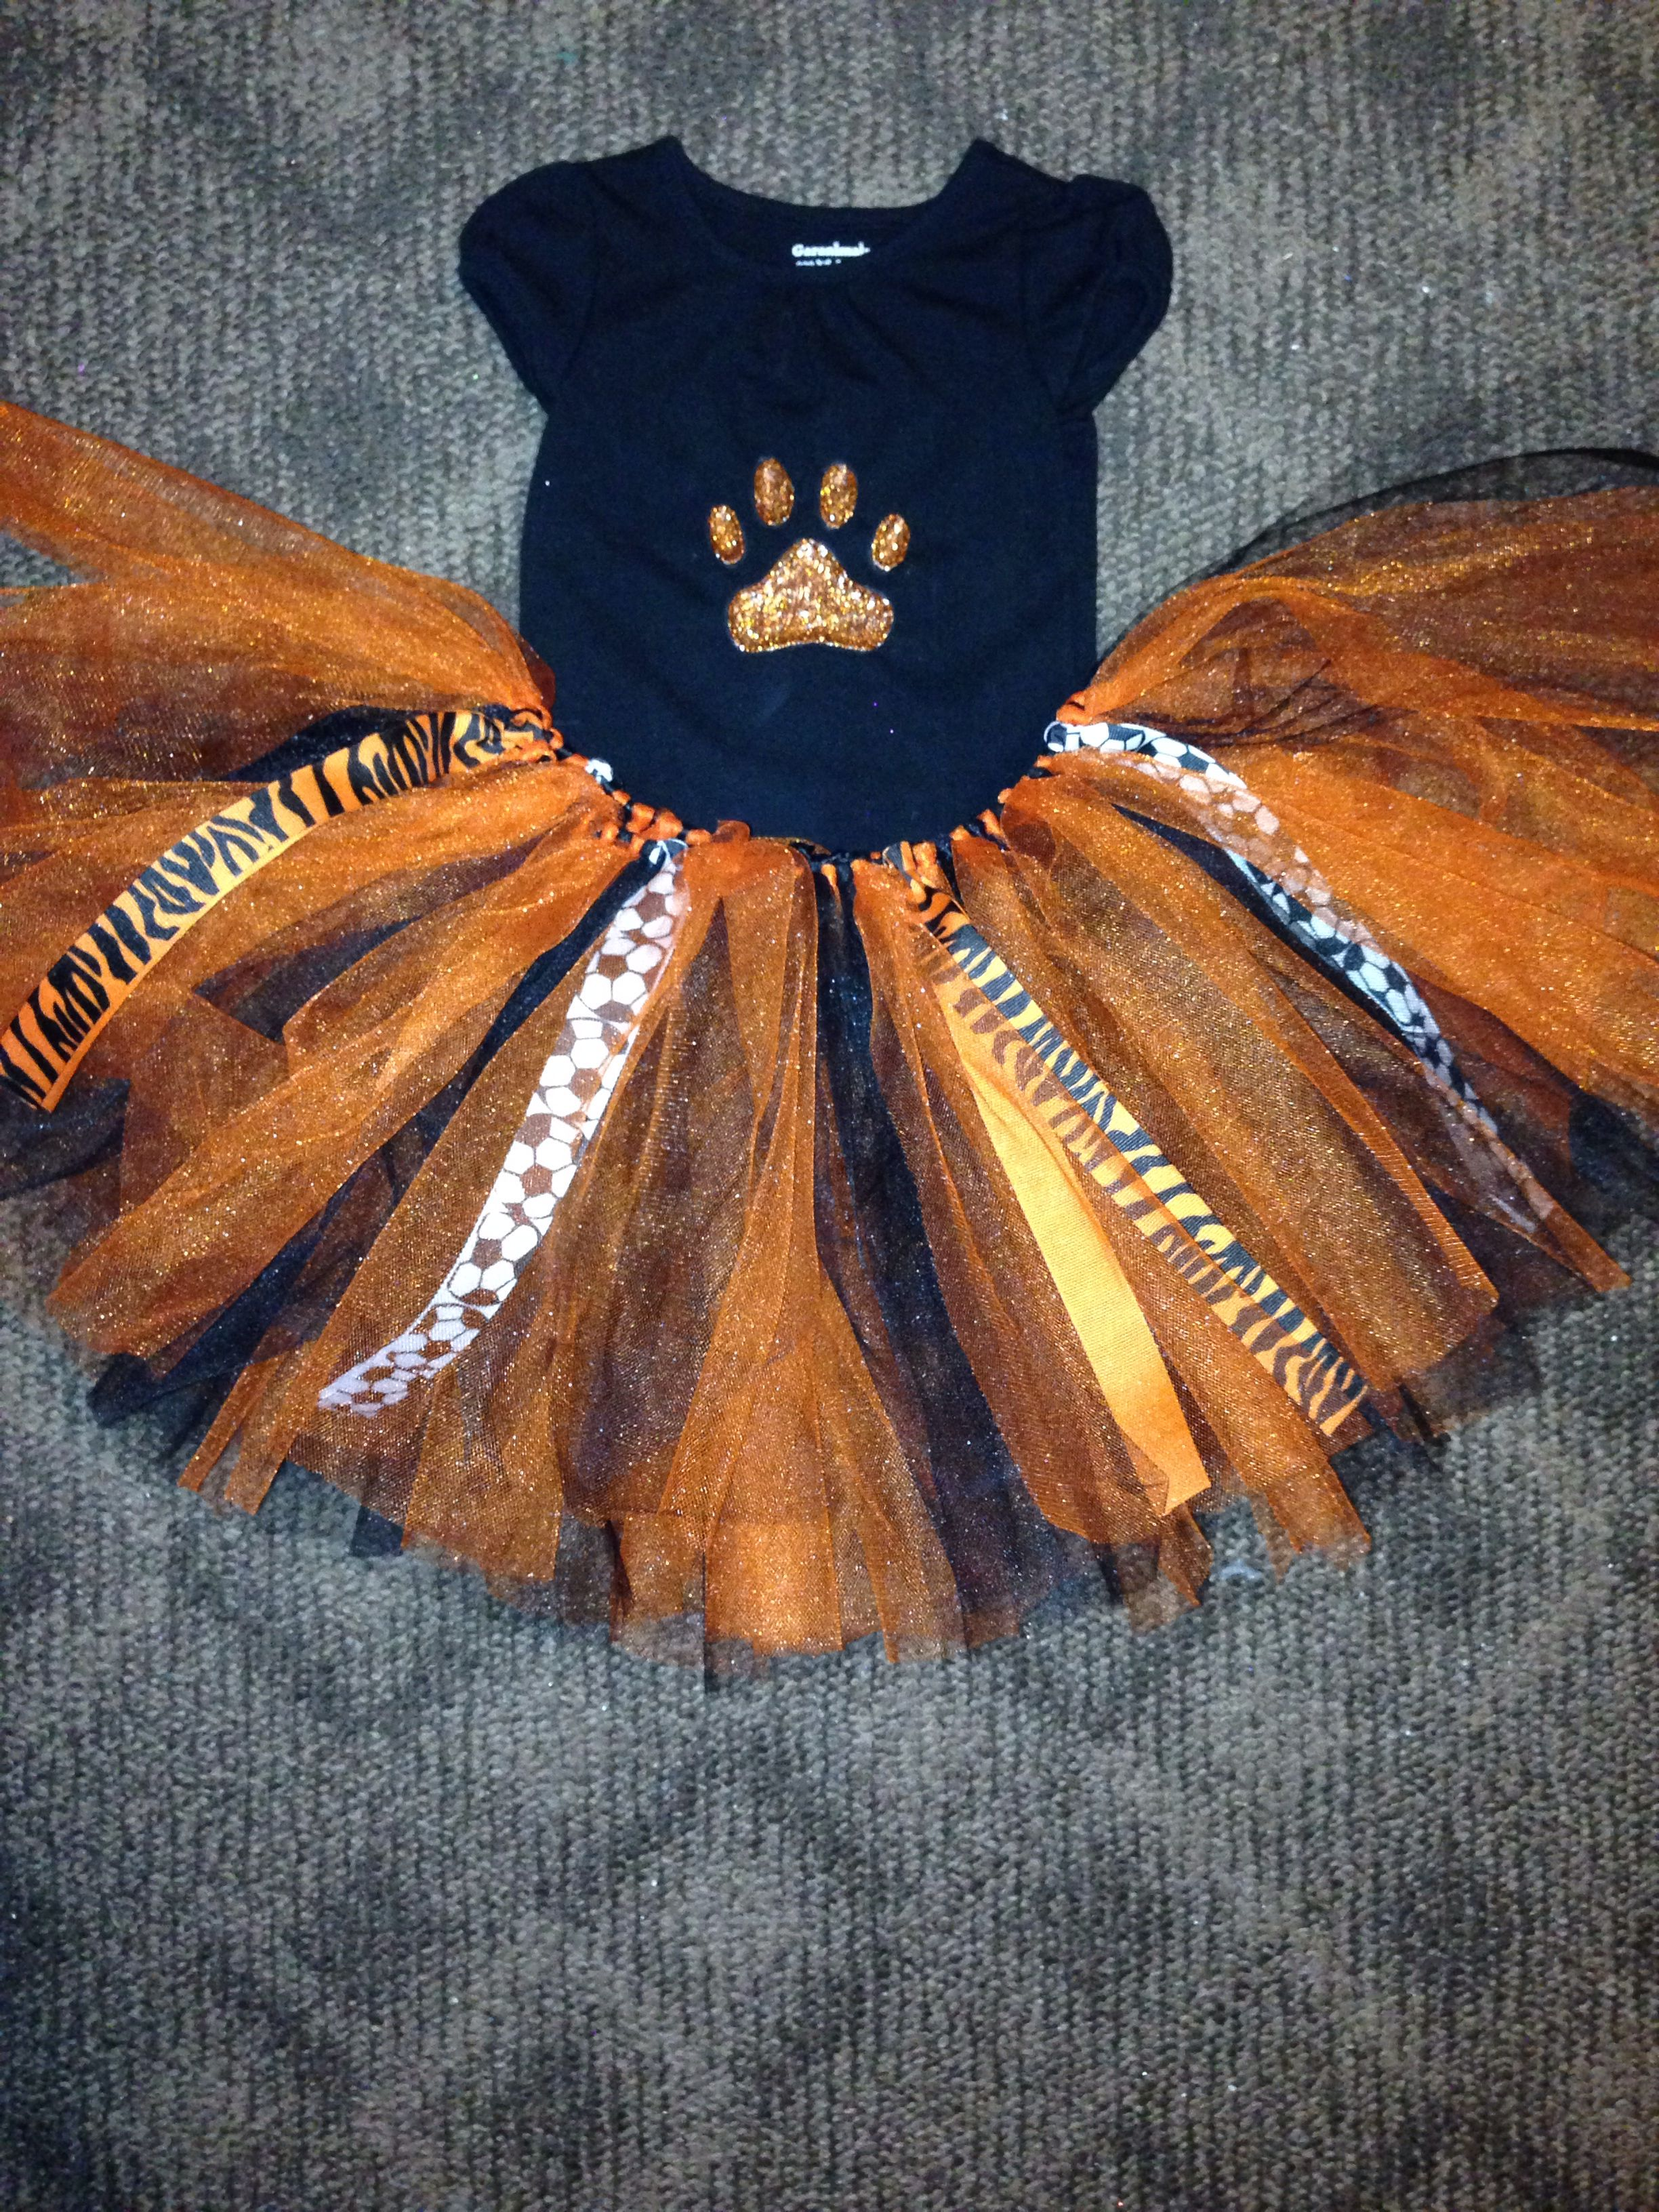 a7ea24655d Tiger paw shirt with orange and black tutu | Costumes in 2019 ...